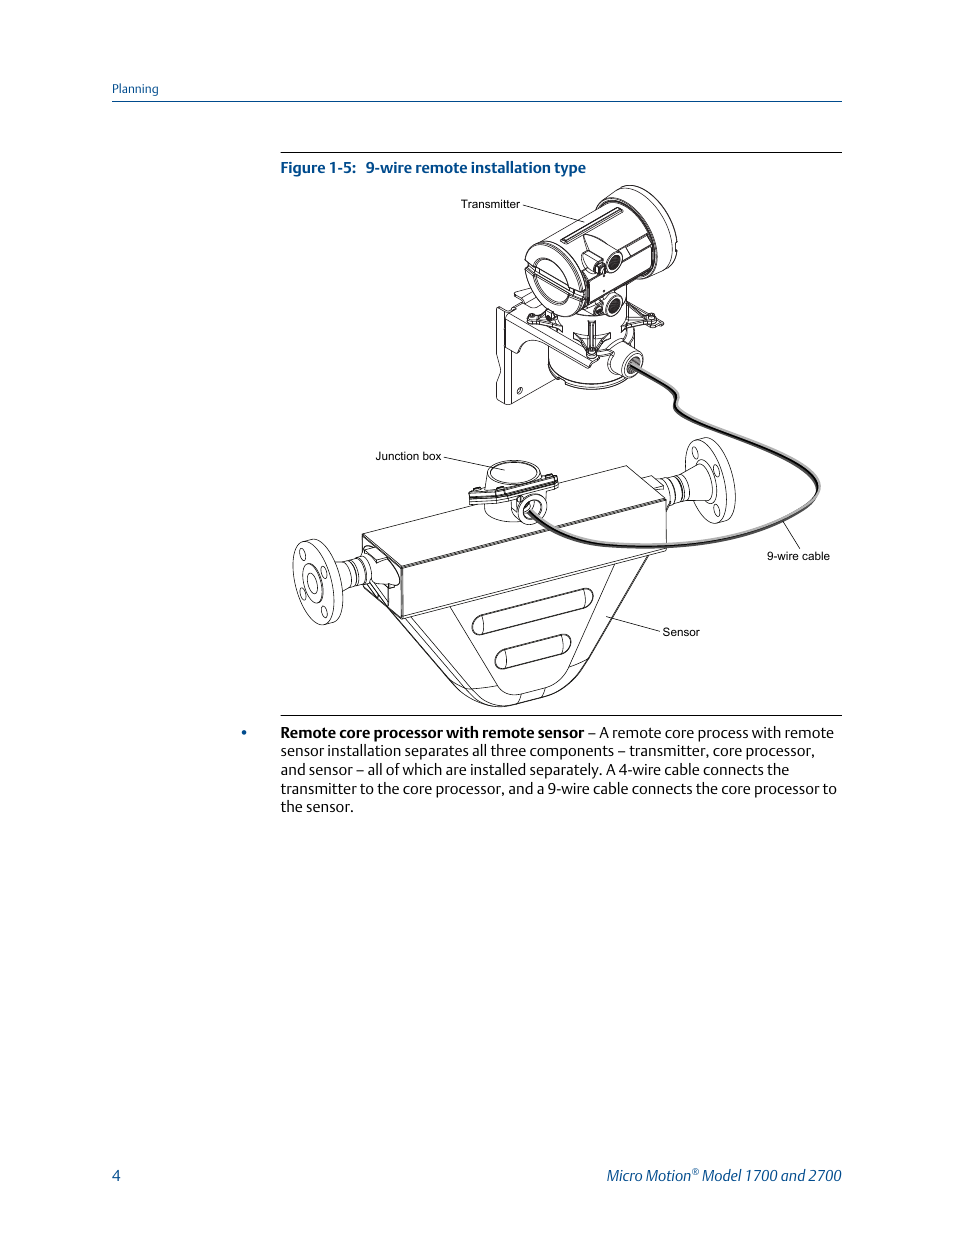 emerson micro motion 1700 page8 emerson micro motion 1700 user manual page 8 124 also for